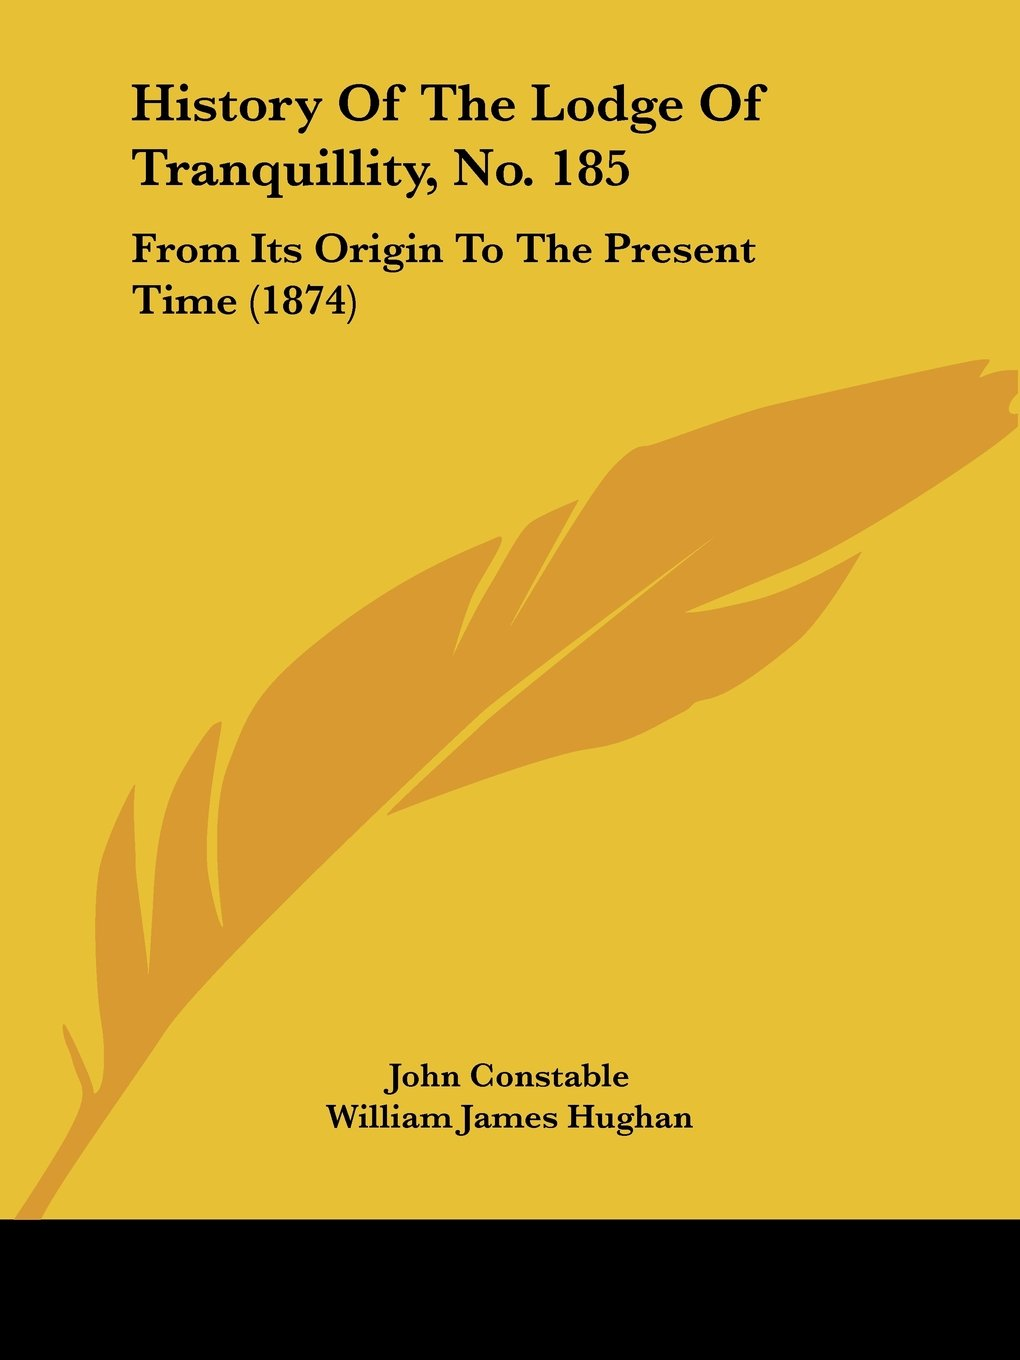 Download History Of The Lodge Of Tranquillity, No. 185: From Its Origin To The Present Time (1874) pdf